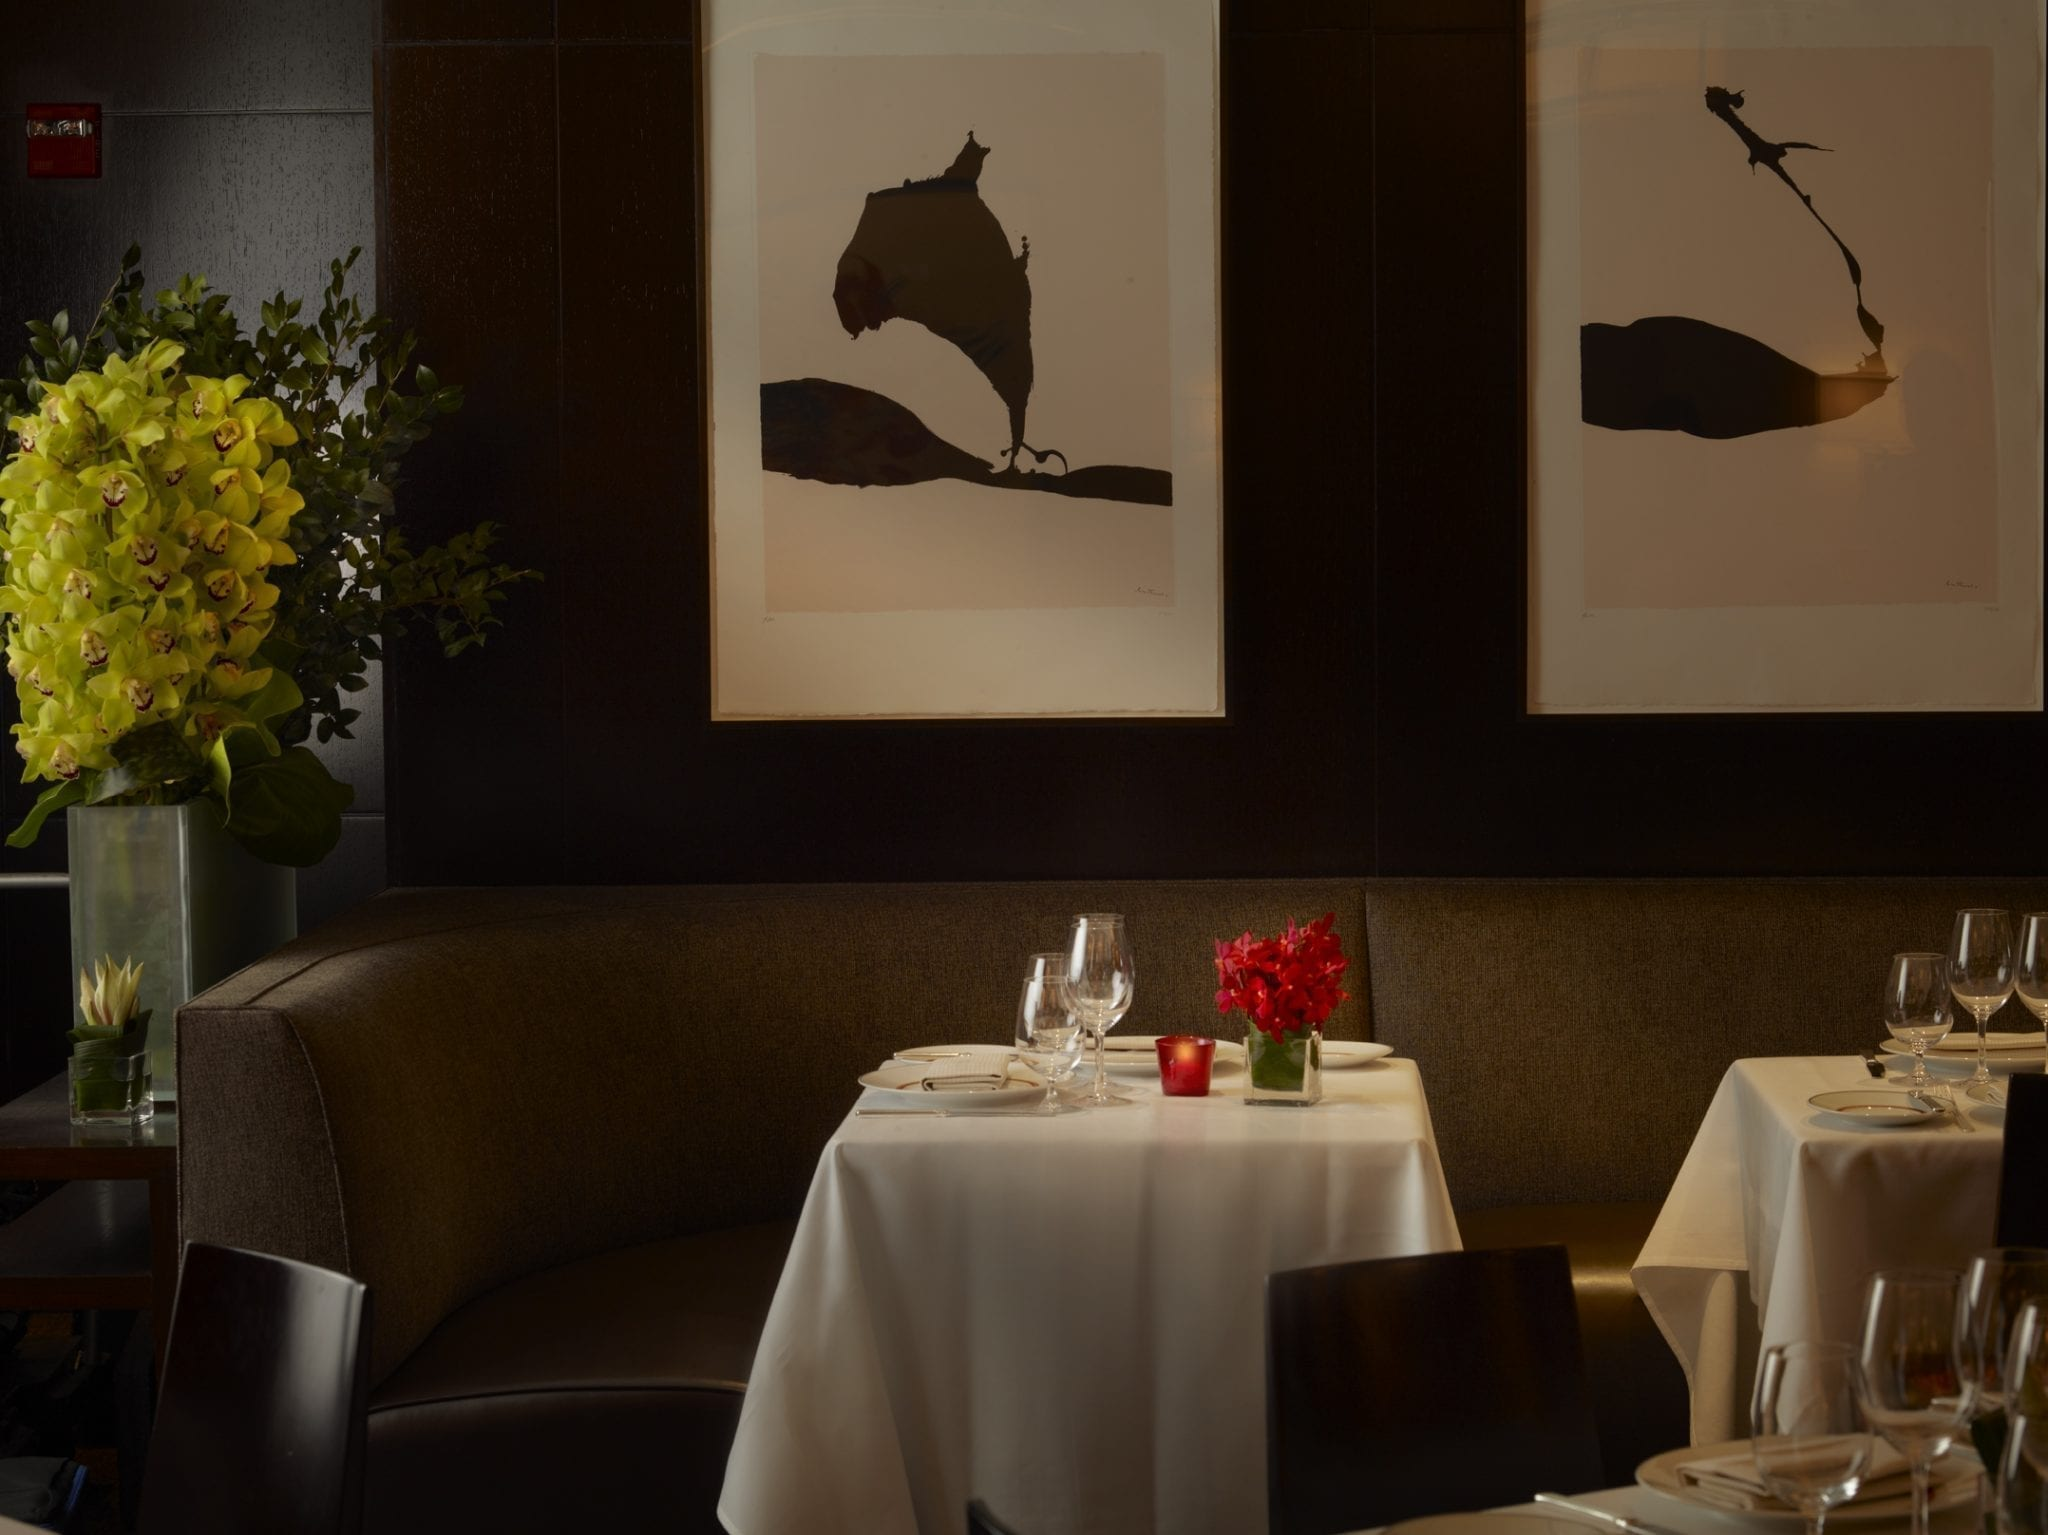 Close-up of a romantic table setting inside Cafe Boulud. The booth seats scoop behind the square table, the booth seat going all along the wall. The table has two empty goblets, placed beside a small flower pot and votive candle. Large paintings hang above, on the back wall. Photography by B. Milne.